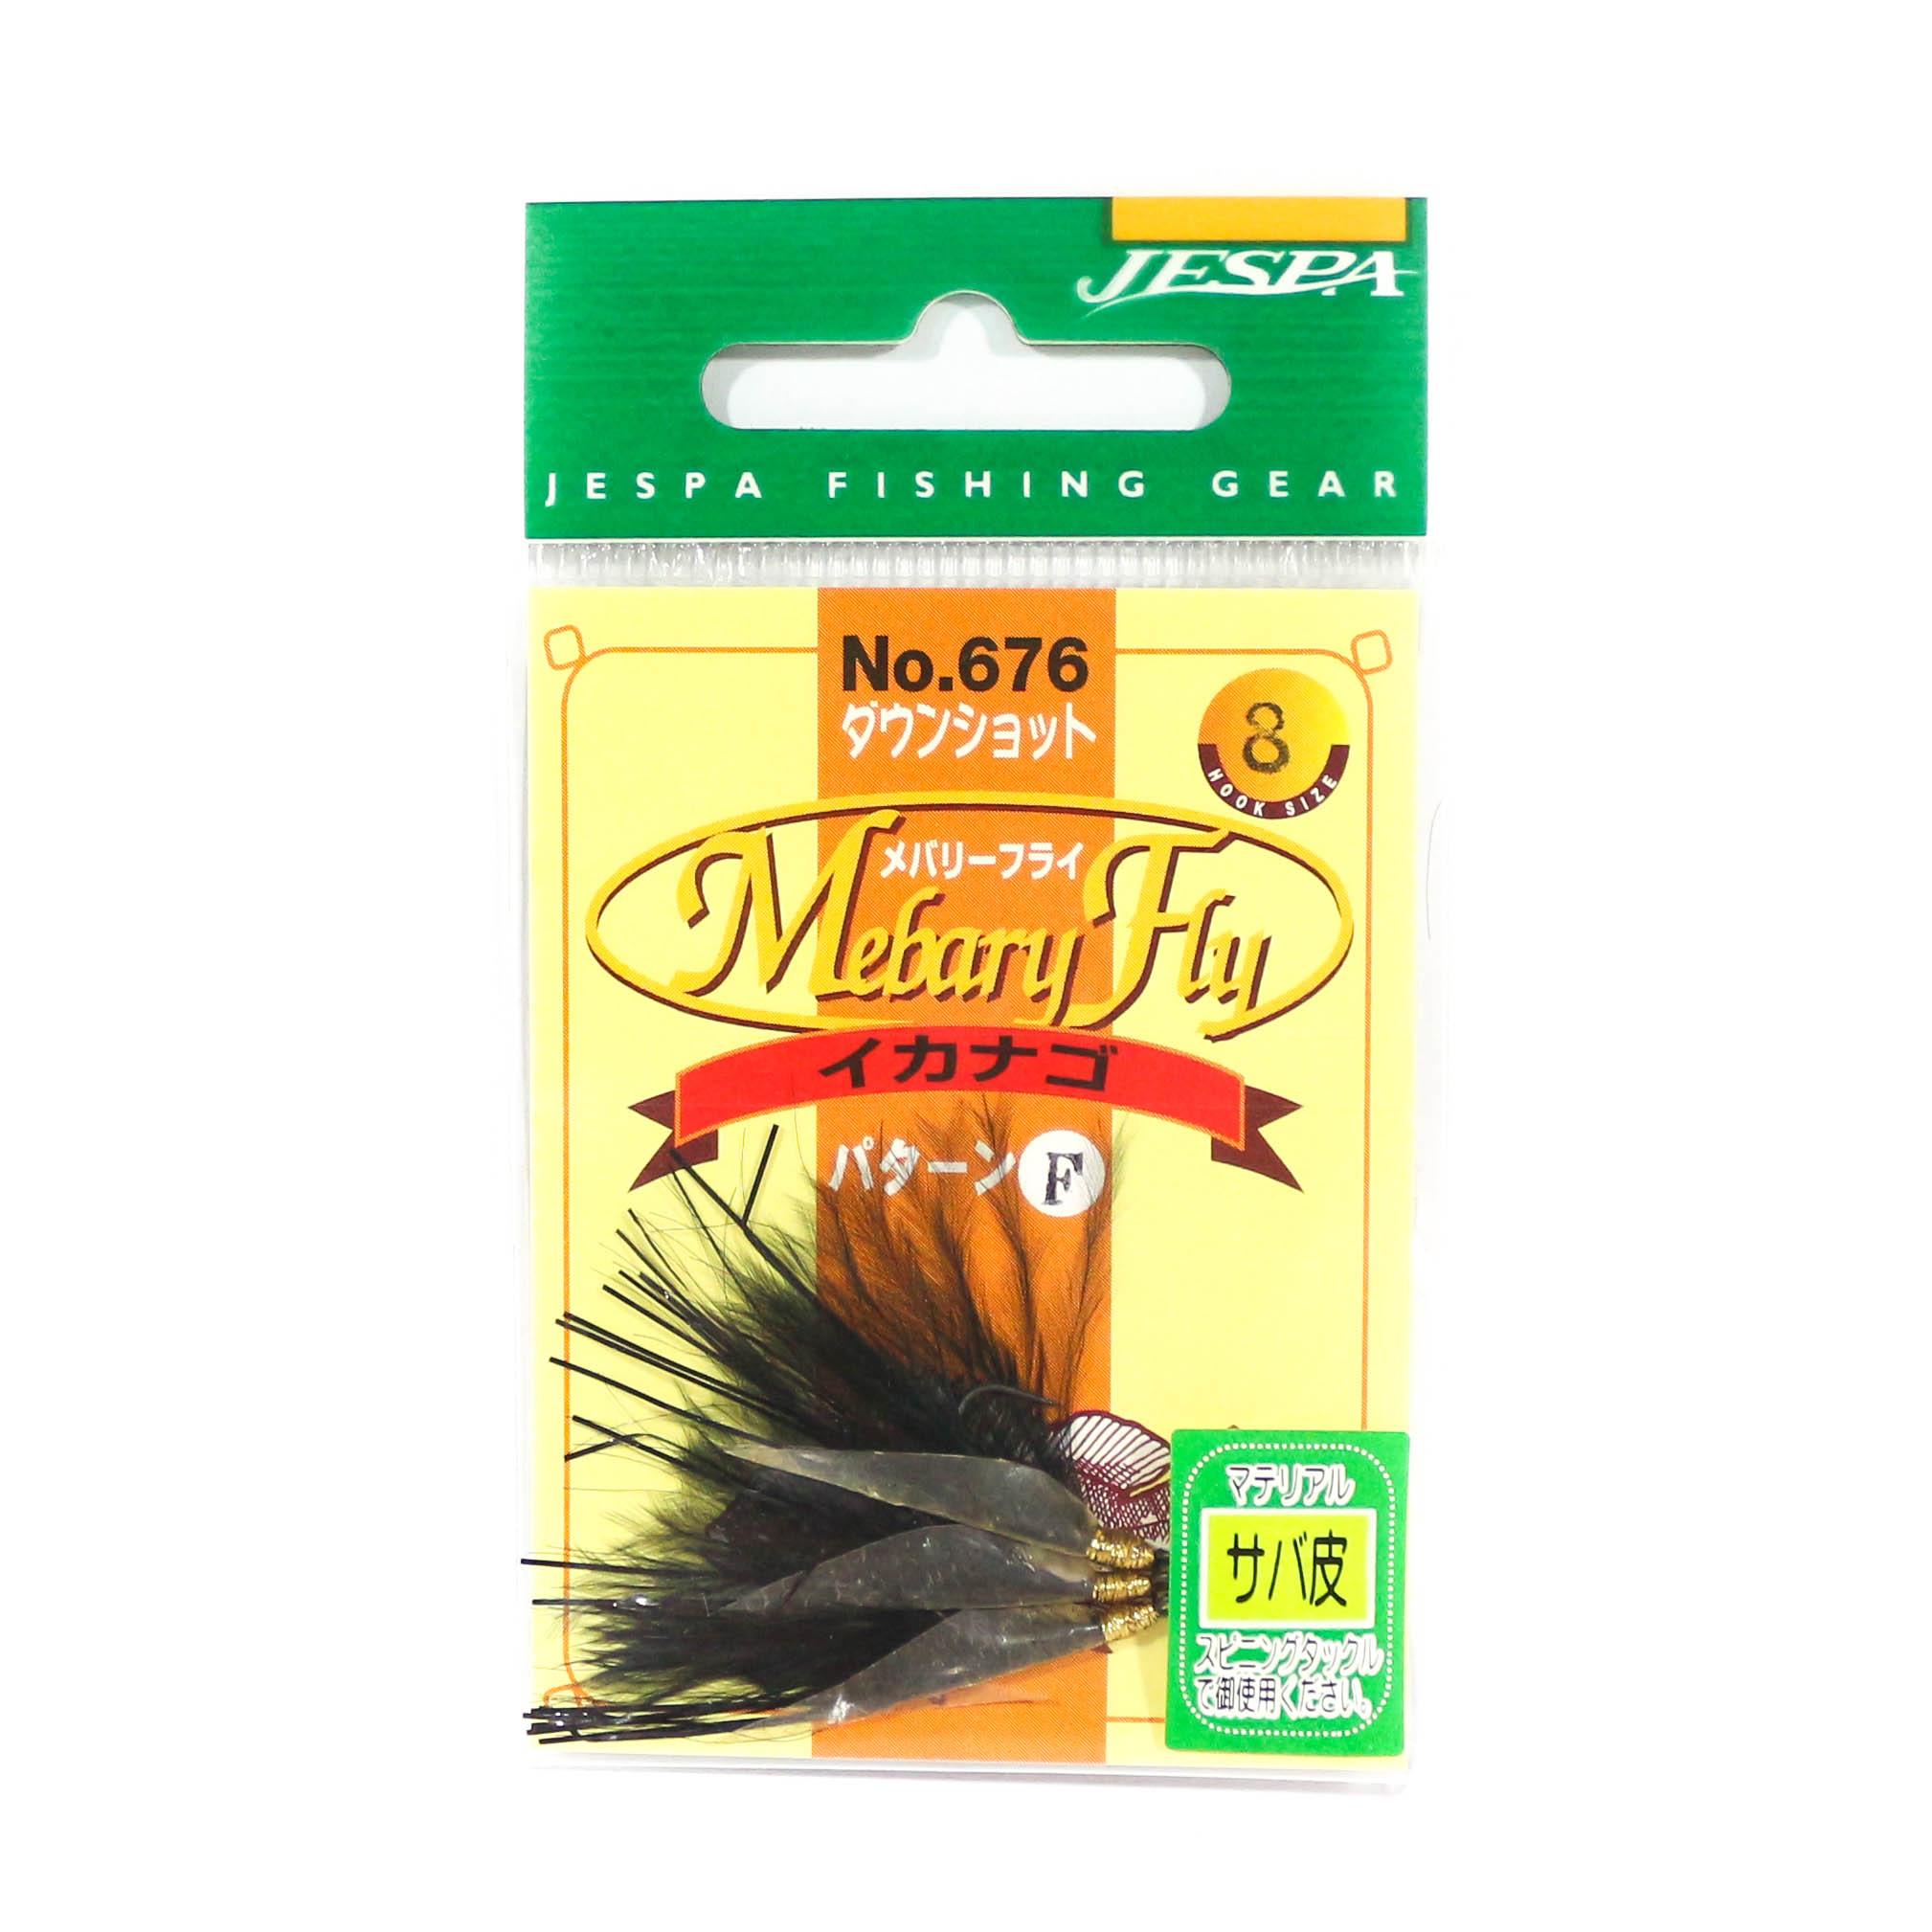 Yarie Jespa M. 676 Mebaru Fly Hook 3 piece per pack Black Size 8 (2071)